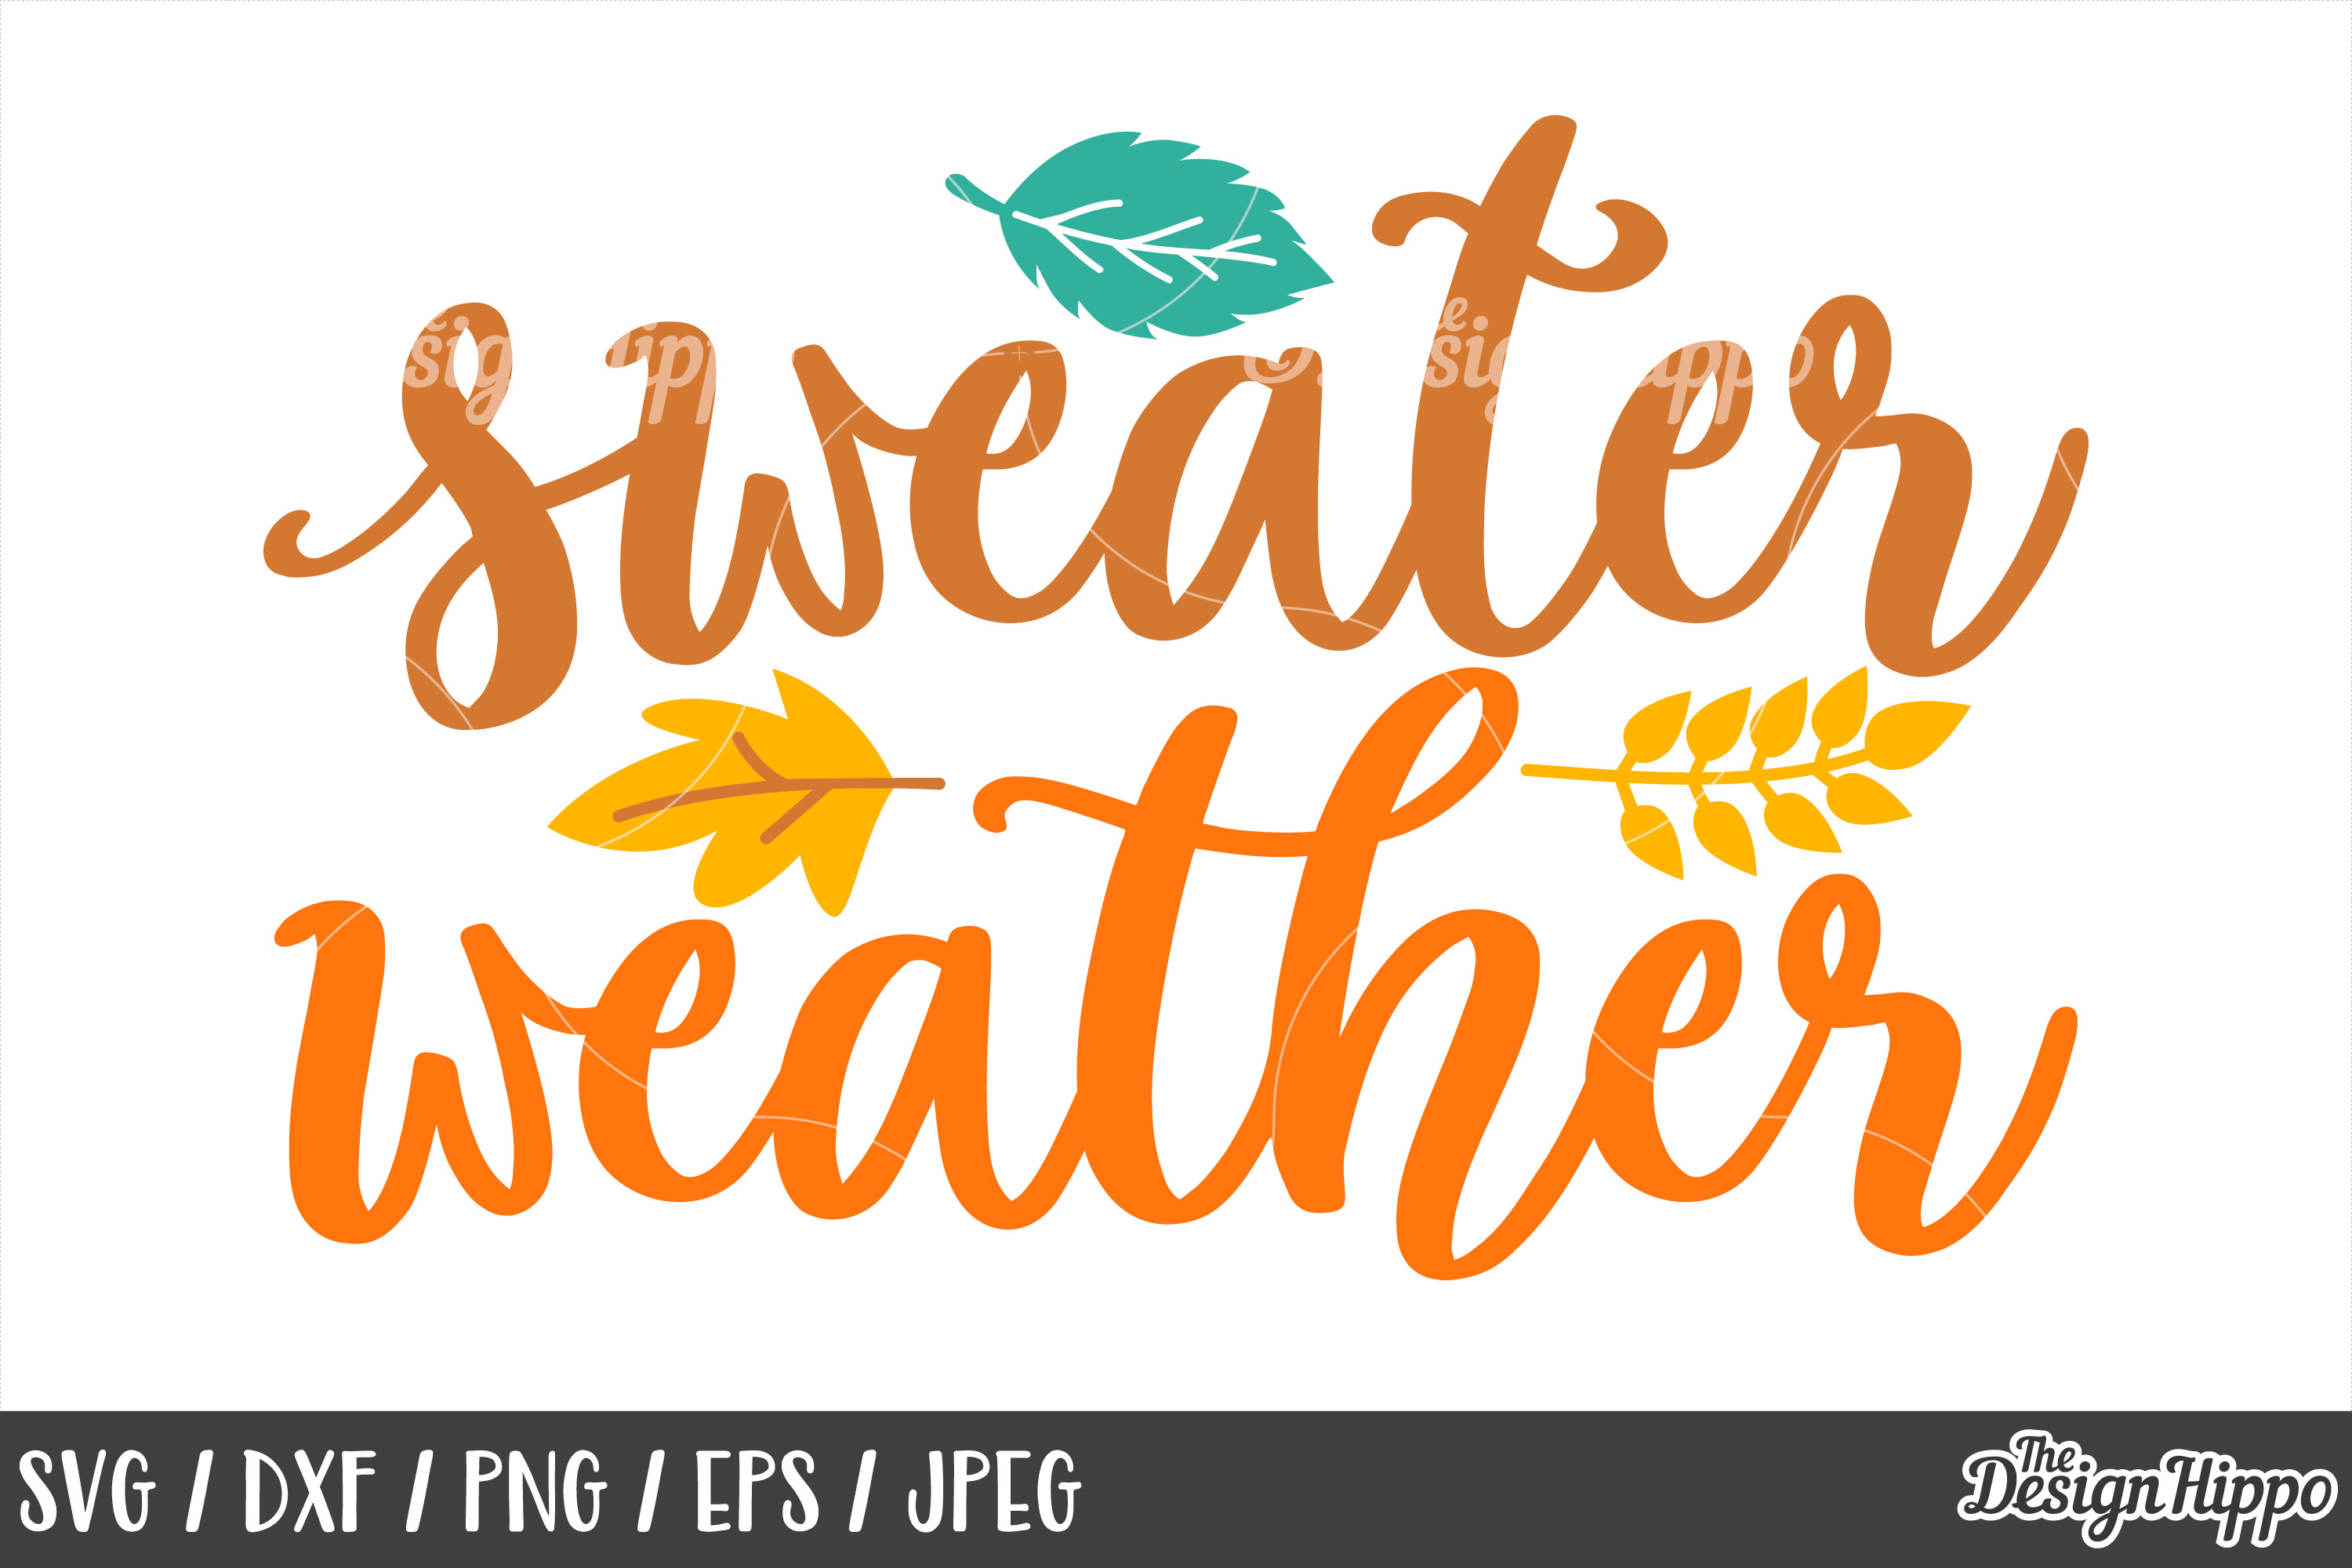 Sweater Weather SVG, DXF, PNG, JPEG, Cut Files, Cricut example image 1